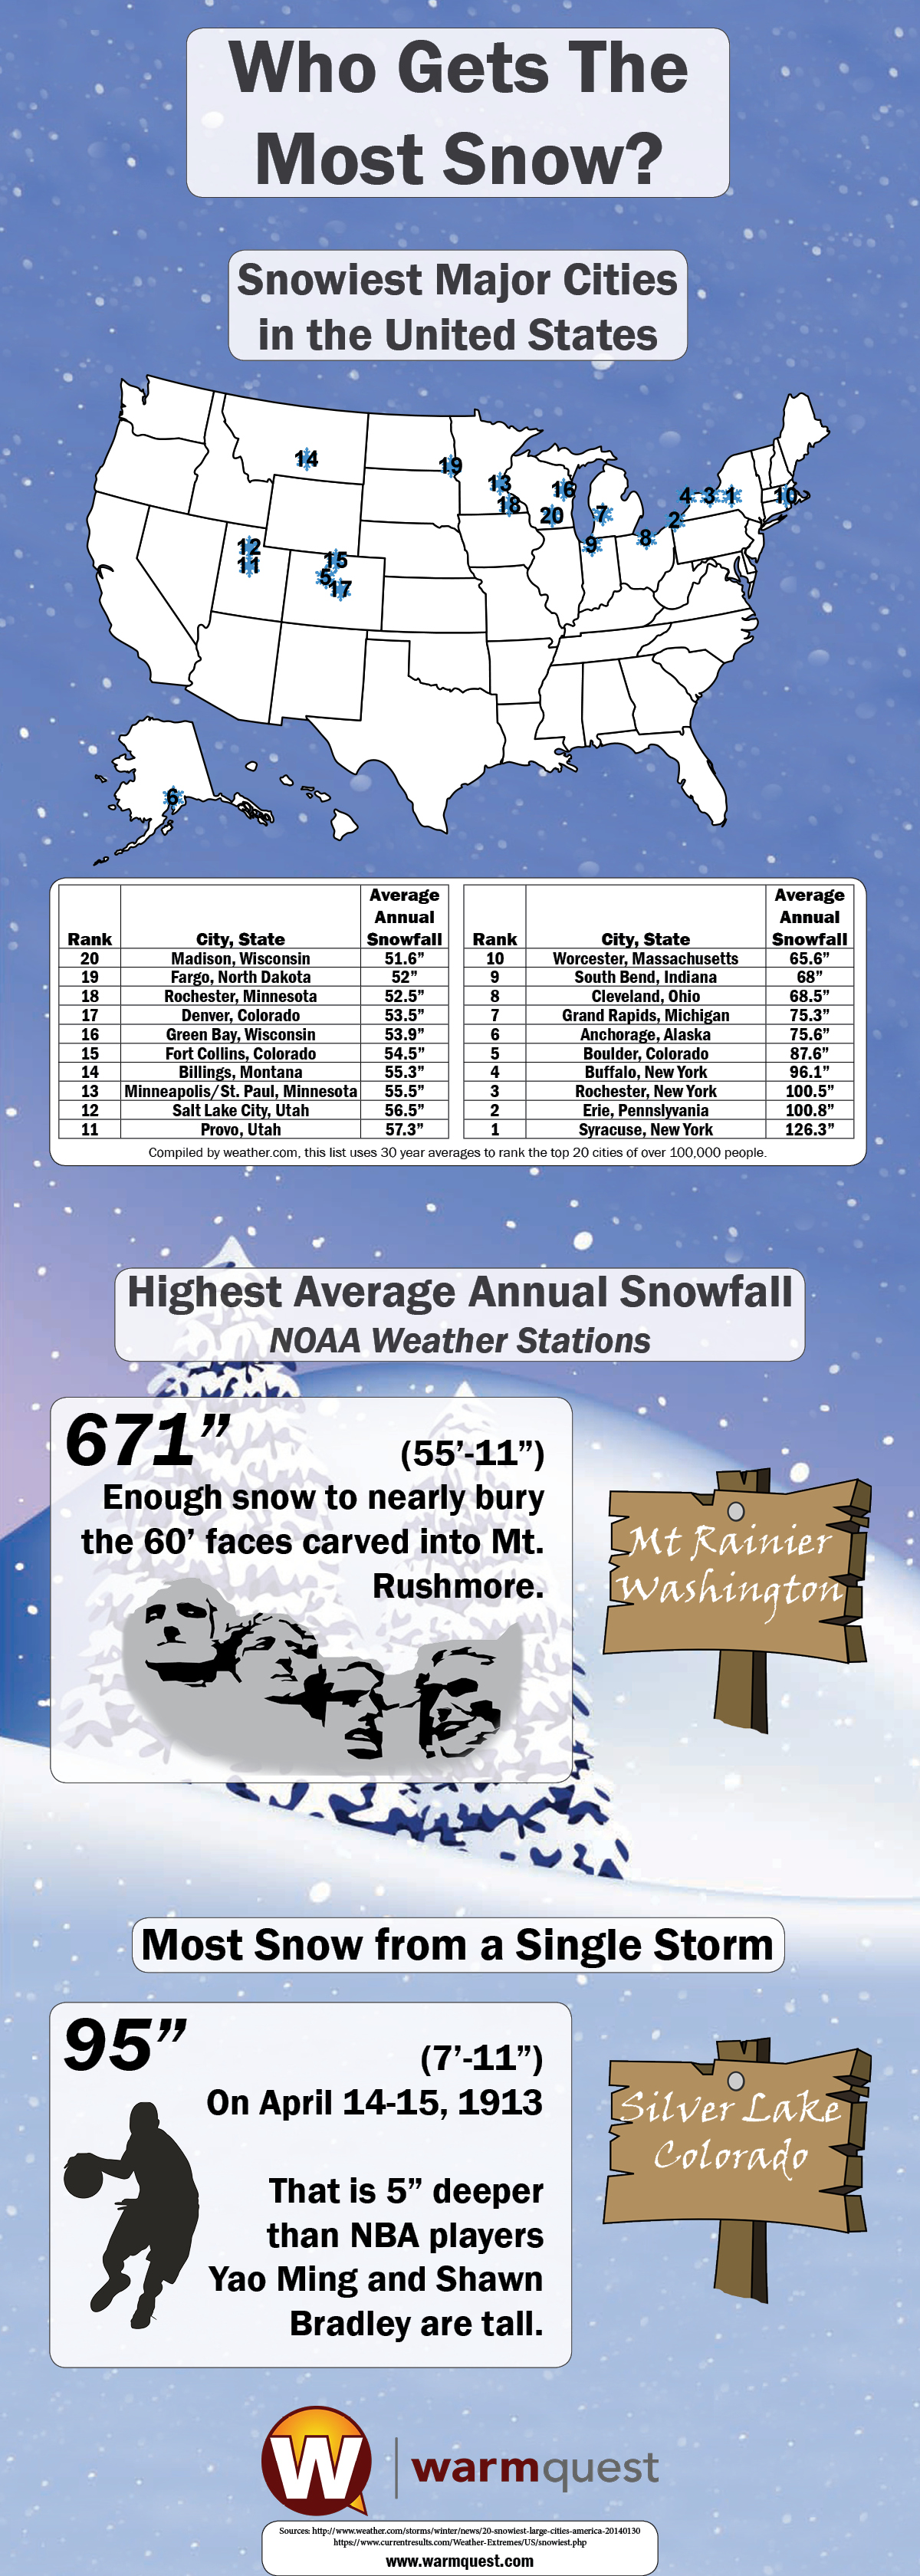 US Snow Facts